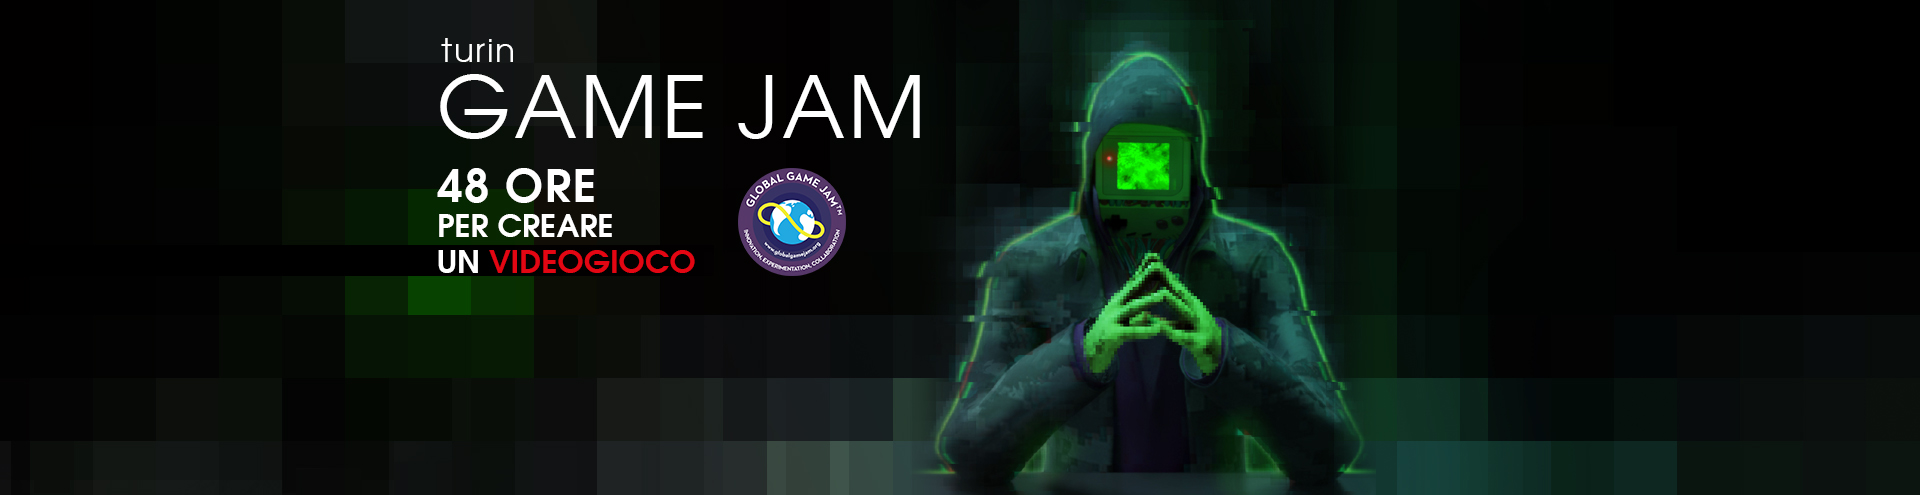 slide_Turin_Game_Jam_2017